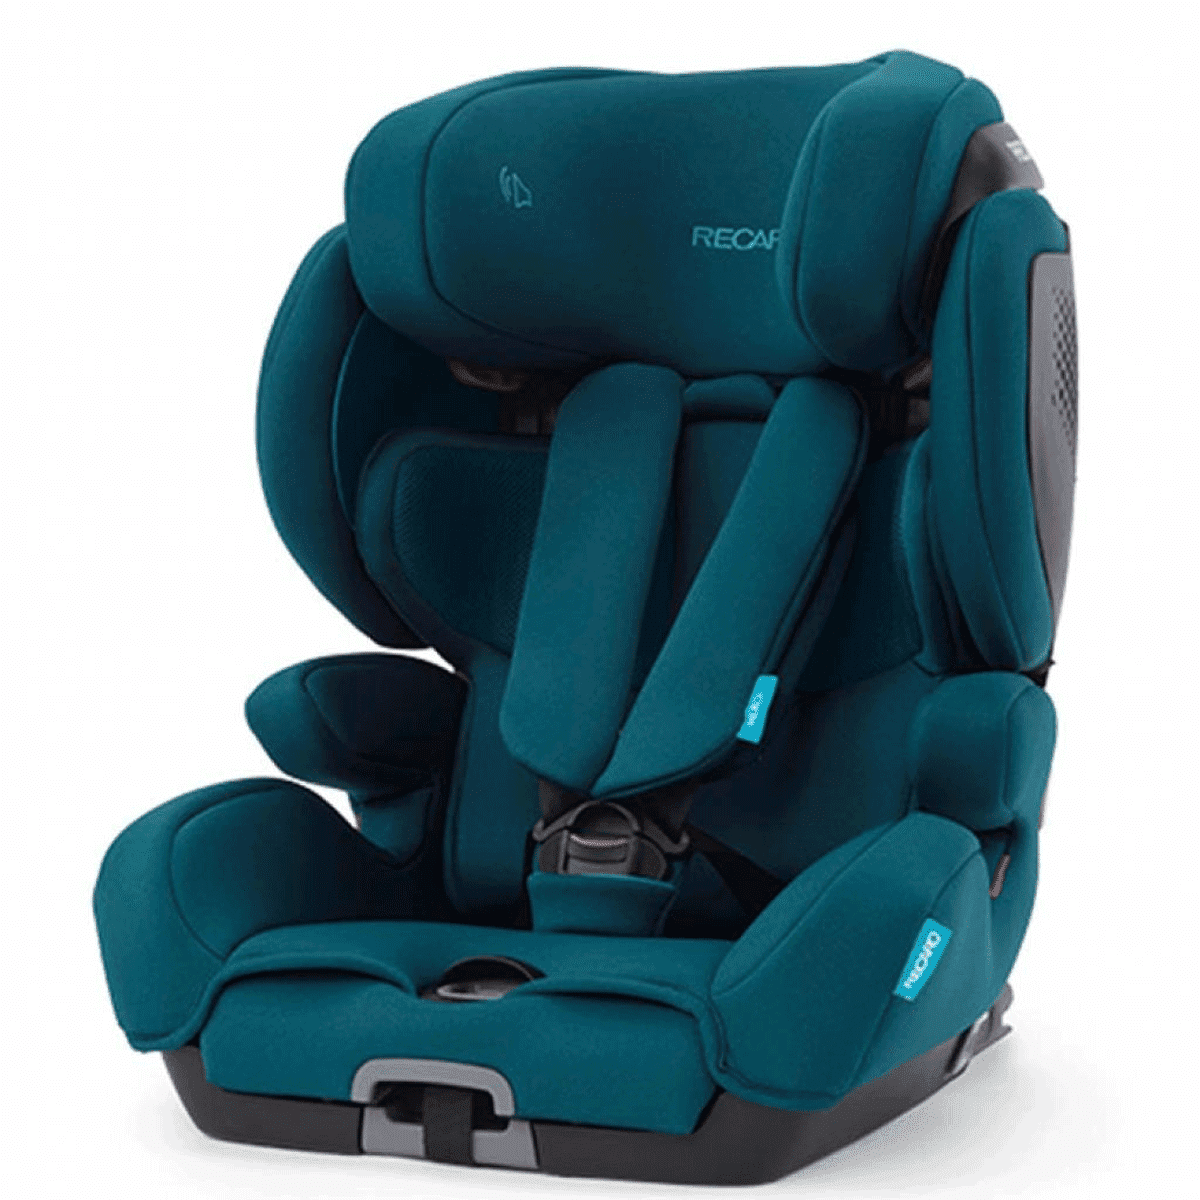 Tian Elite Select de Recaro